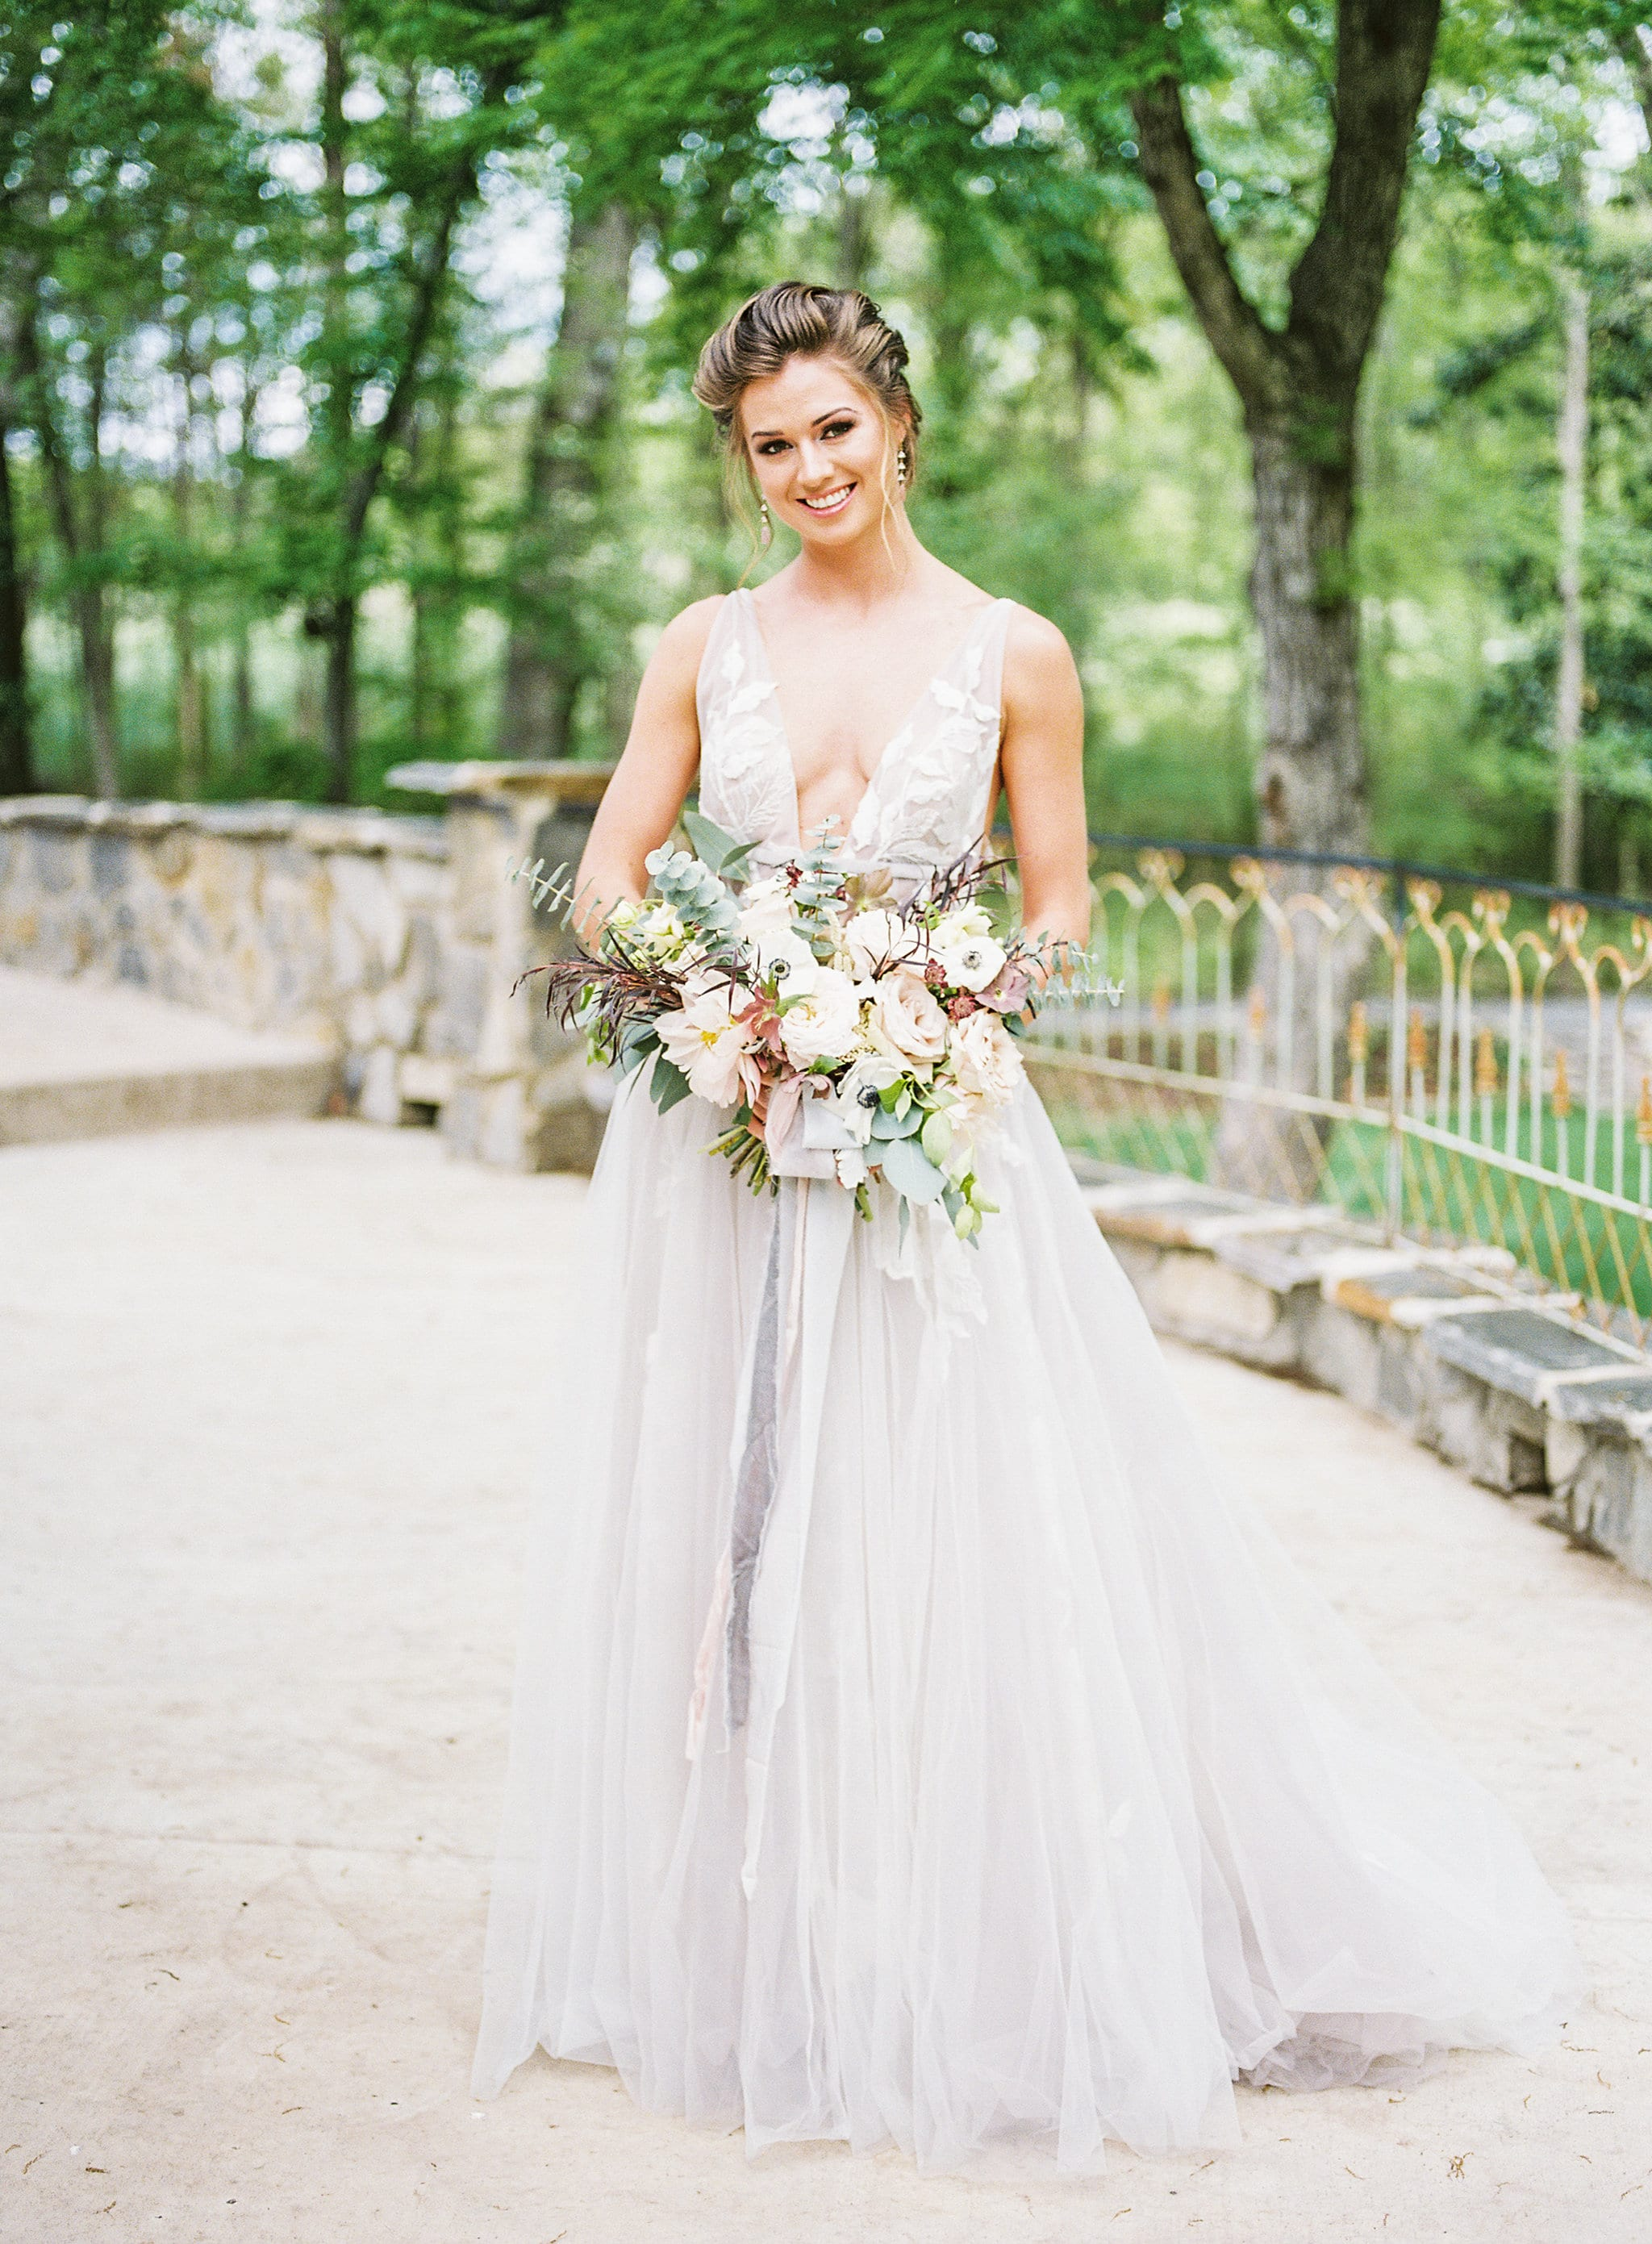 Bride poses with stunning bouquet created by Whats Up Buttercup for a styled shoot at Tipsy Goat Estate designed by Magnificent Moments Weddings